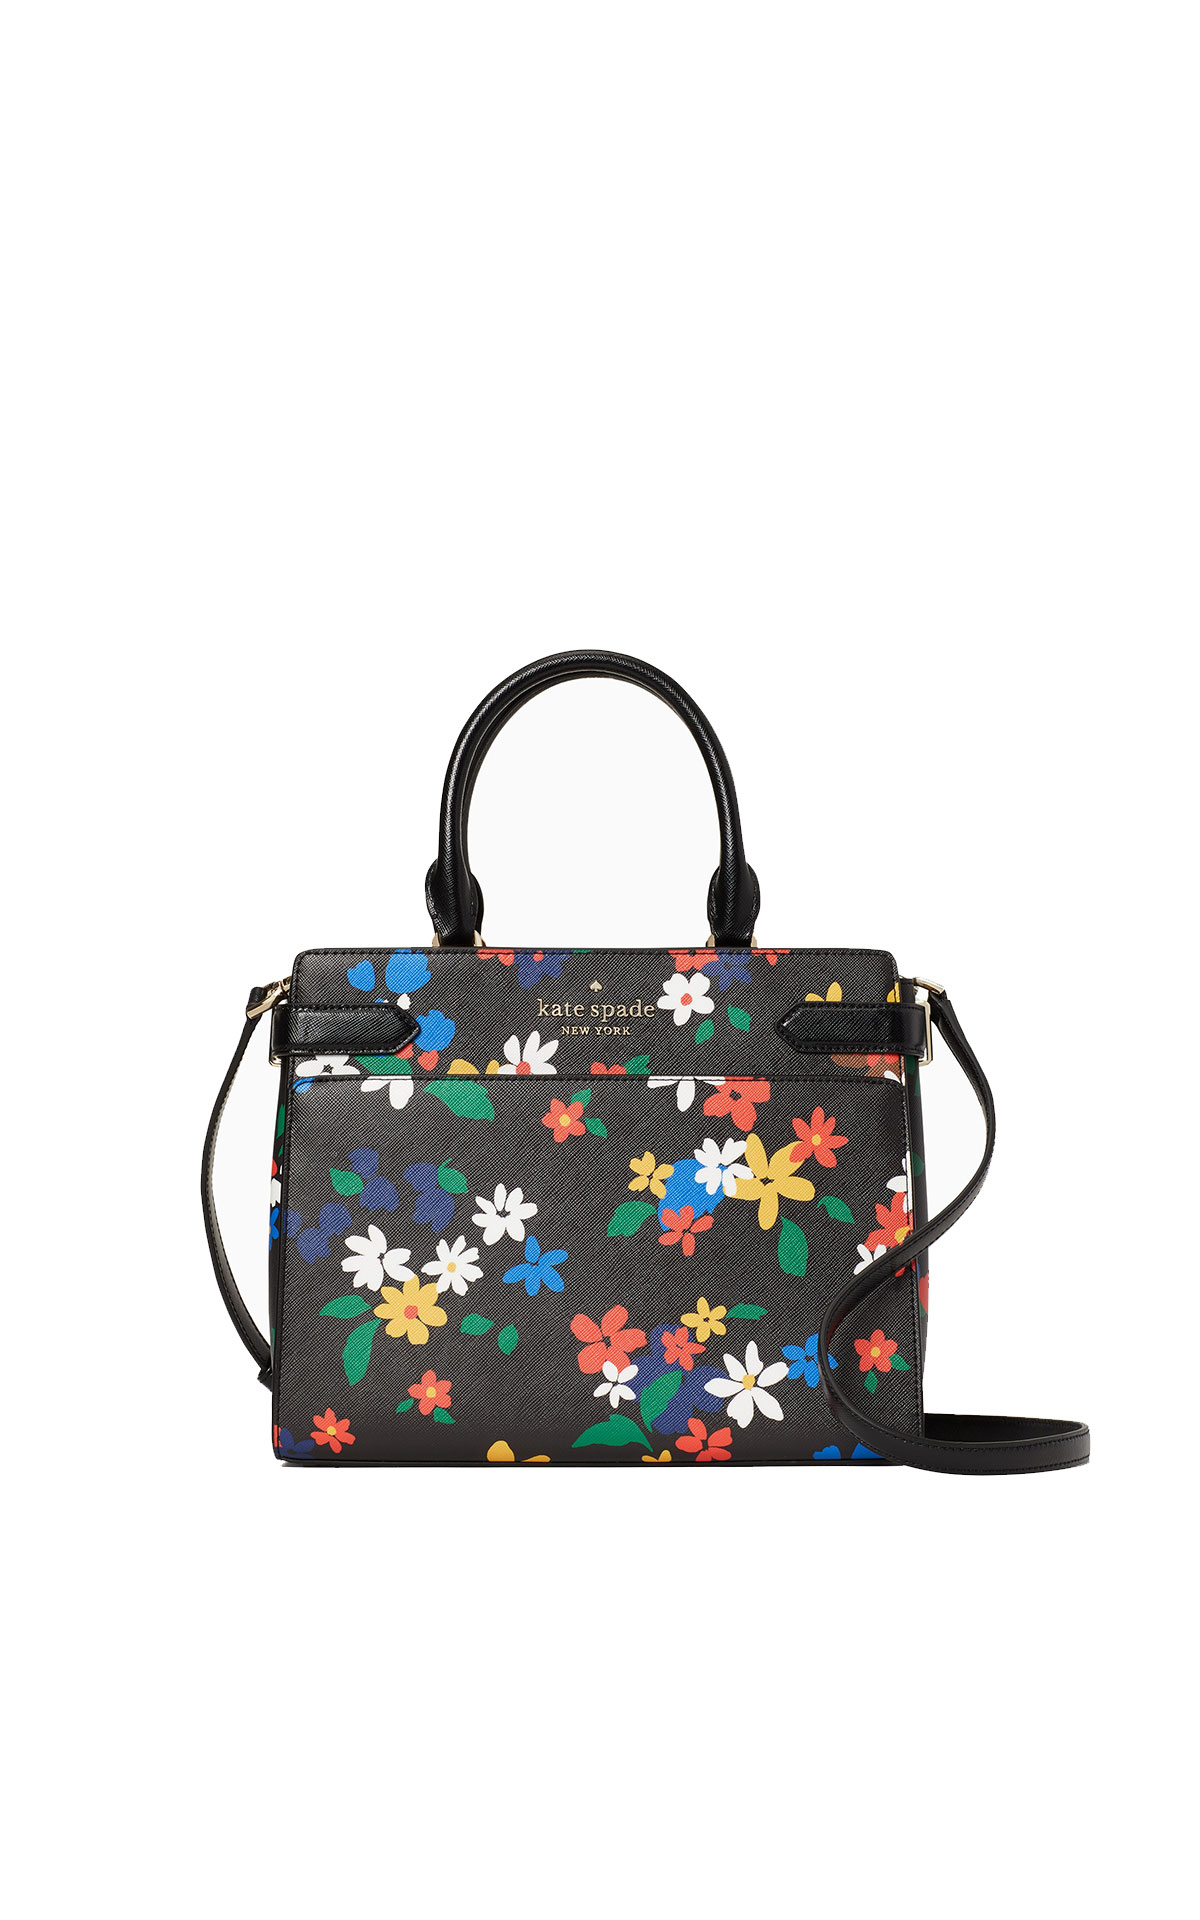 kate spade new york Staci sailing floral medium satchel from Bicester Village